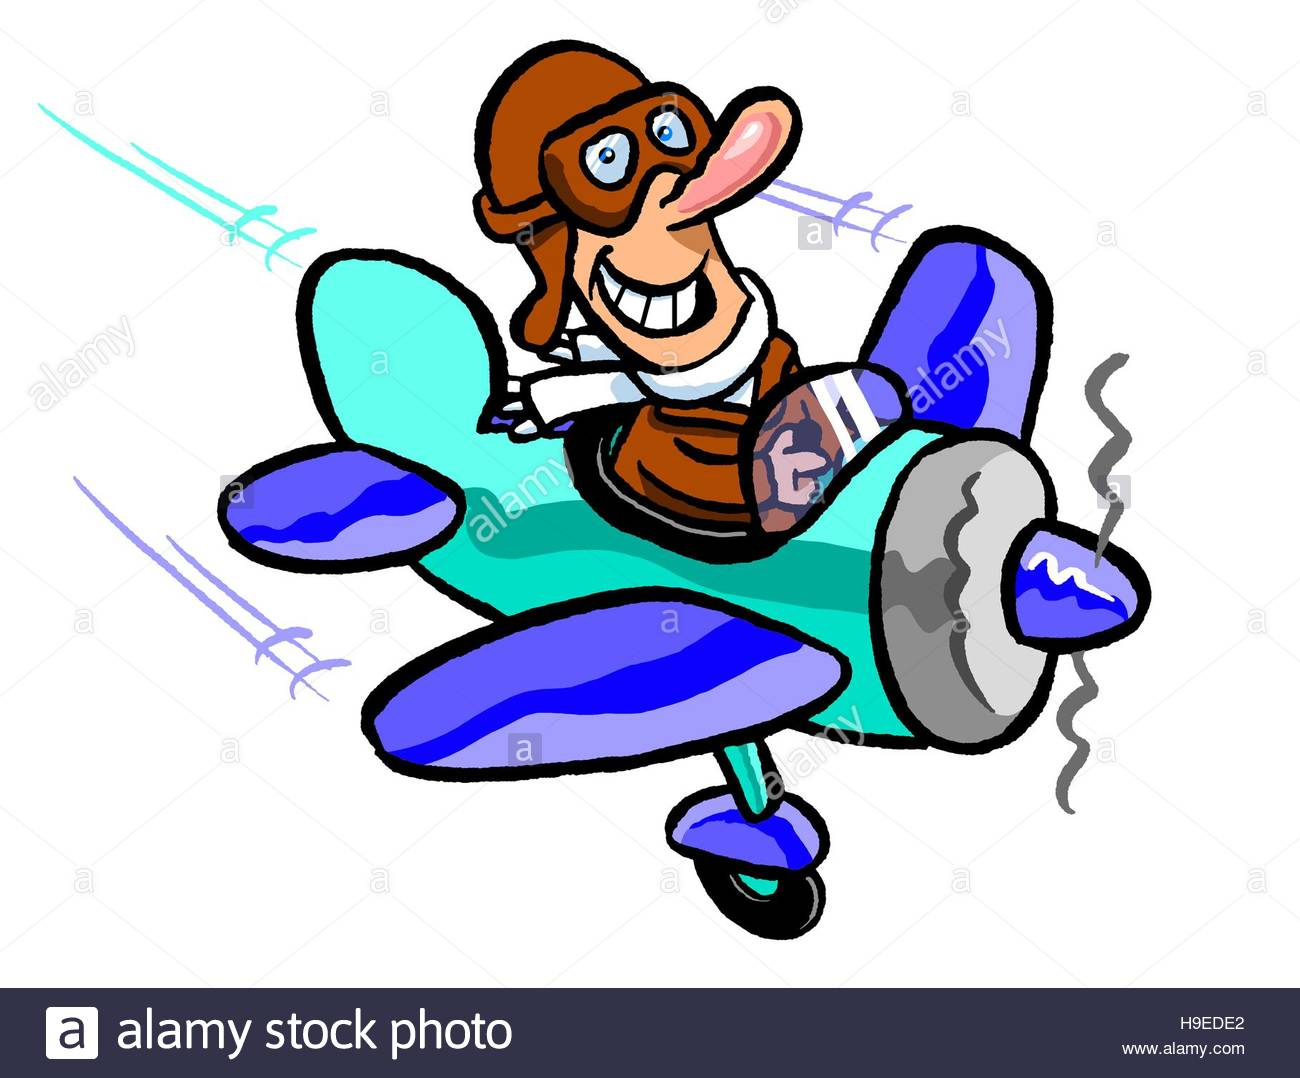 rc buy with Stock Photo Cartoon Illustration Of Pilot With Helmet Goggles And Scarf Flying 126322394 on Watch as well Stock Photo Cartoon Illustration Of Pilot With Helmet Goggles And Scarf Flying 126322394 further KCjP as well Rc8677 together with Sphero 2 0 Robotic Ball By Orbotix Limited Edition Revealed.